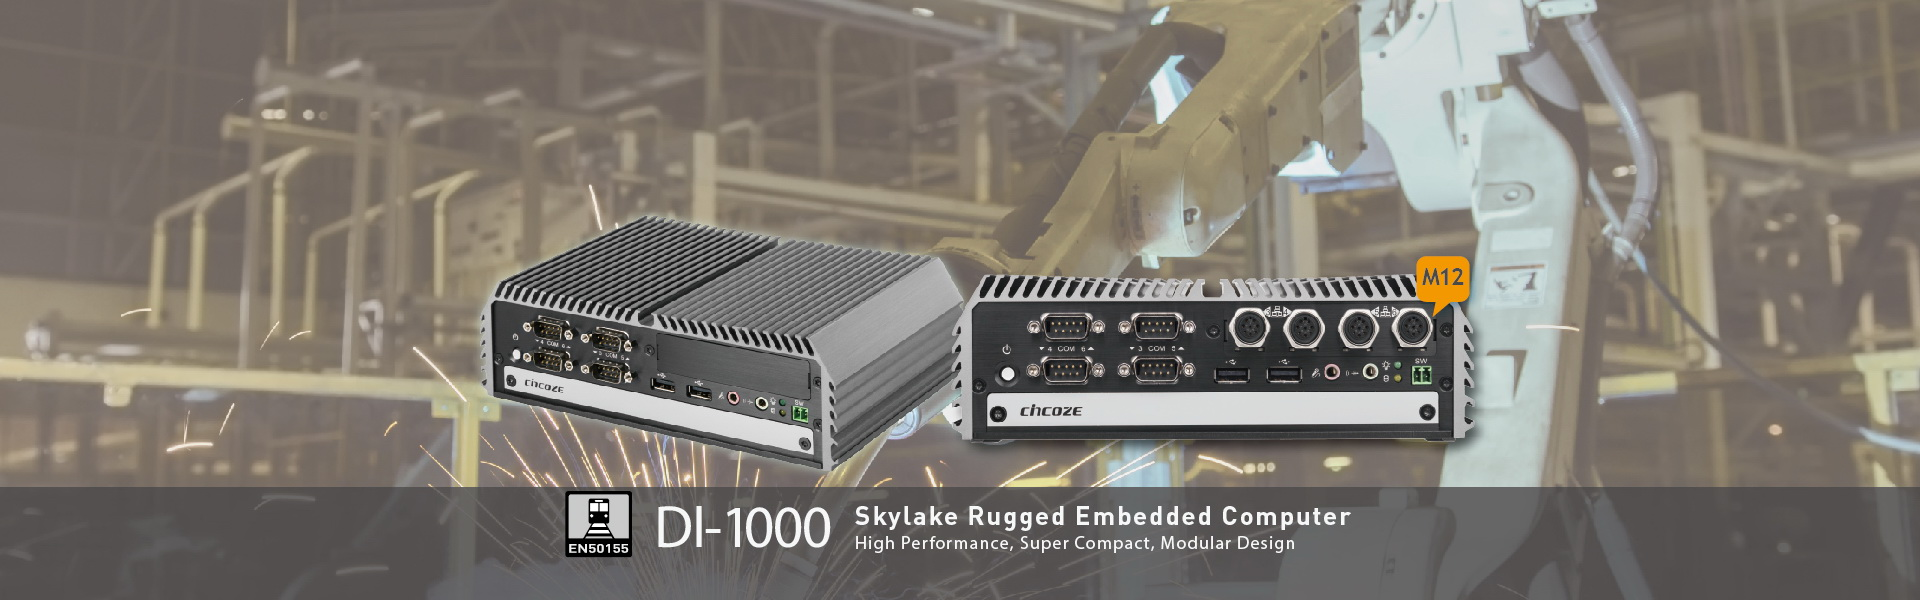 DI-1000: 6th Generation Intel® Core™ Processor (Skylake-U) High Performance, Compact and Modular Rugged Embedded Computer